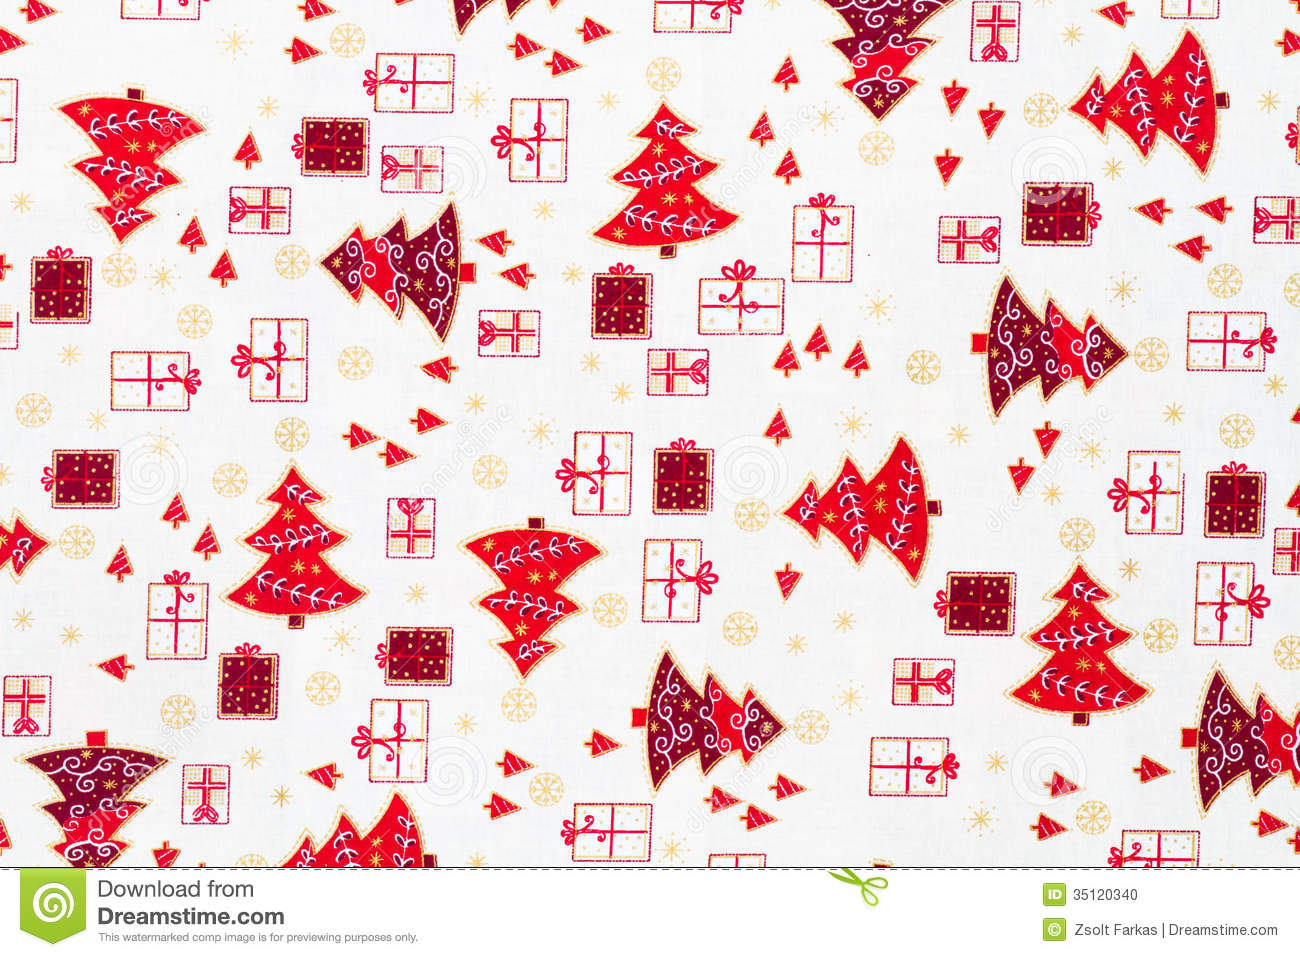 3d Fruit Wallpaper Wrapping Paper With Christmas Elements Stock Illustration